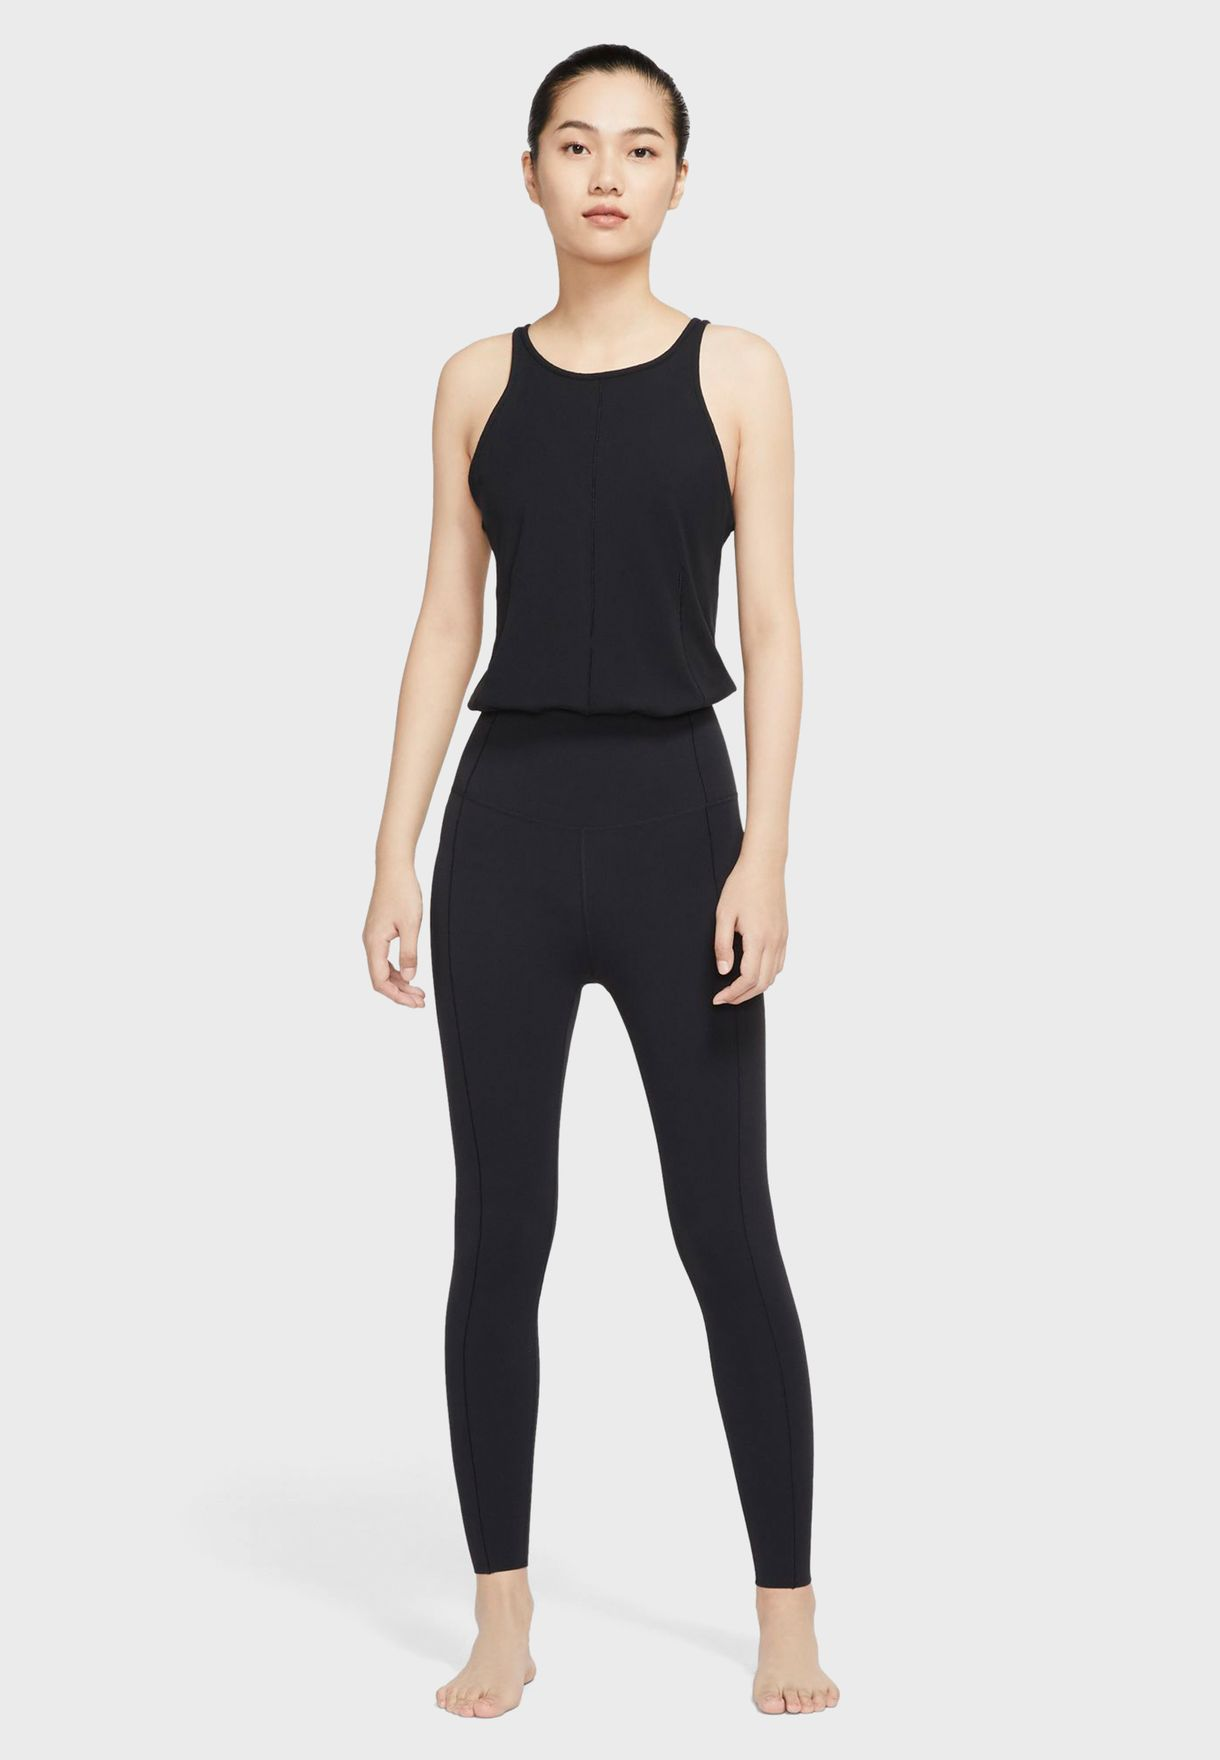 Yoga Statement Jumpsuit